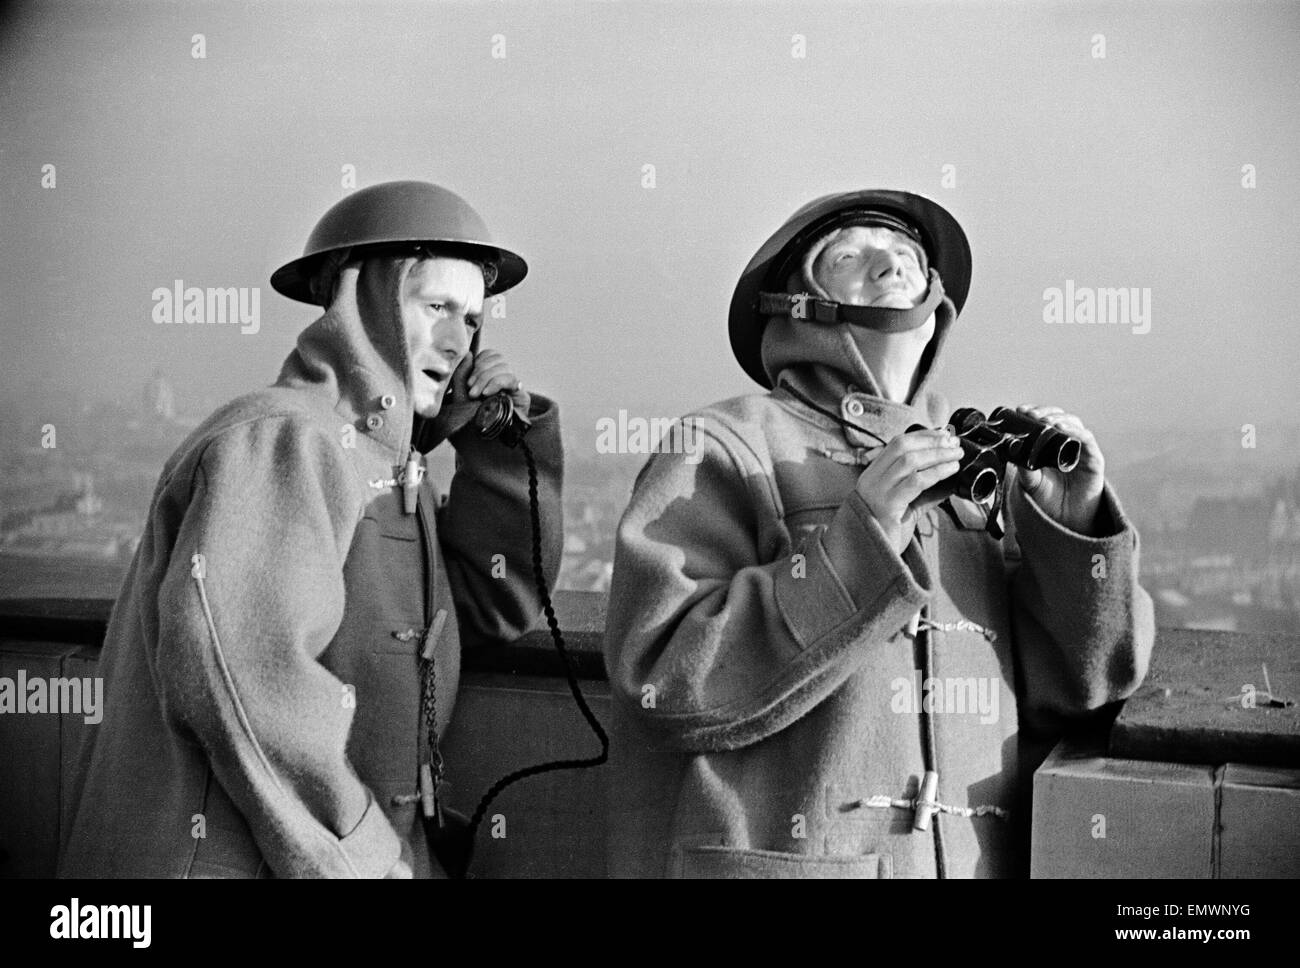 L.F.S HQ Observer post and fire watchers. - Stock Image